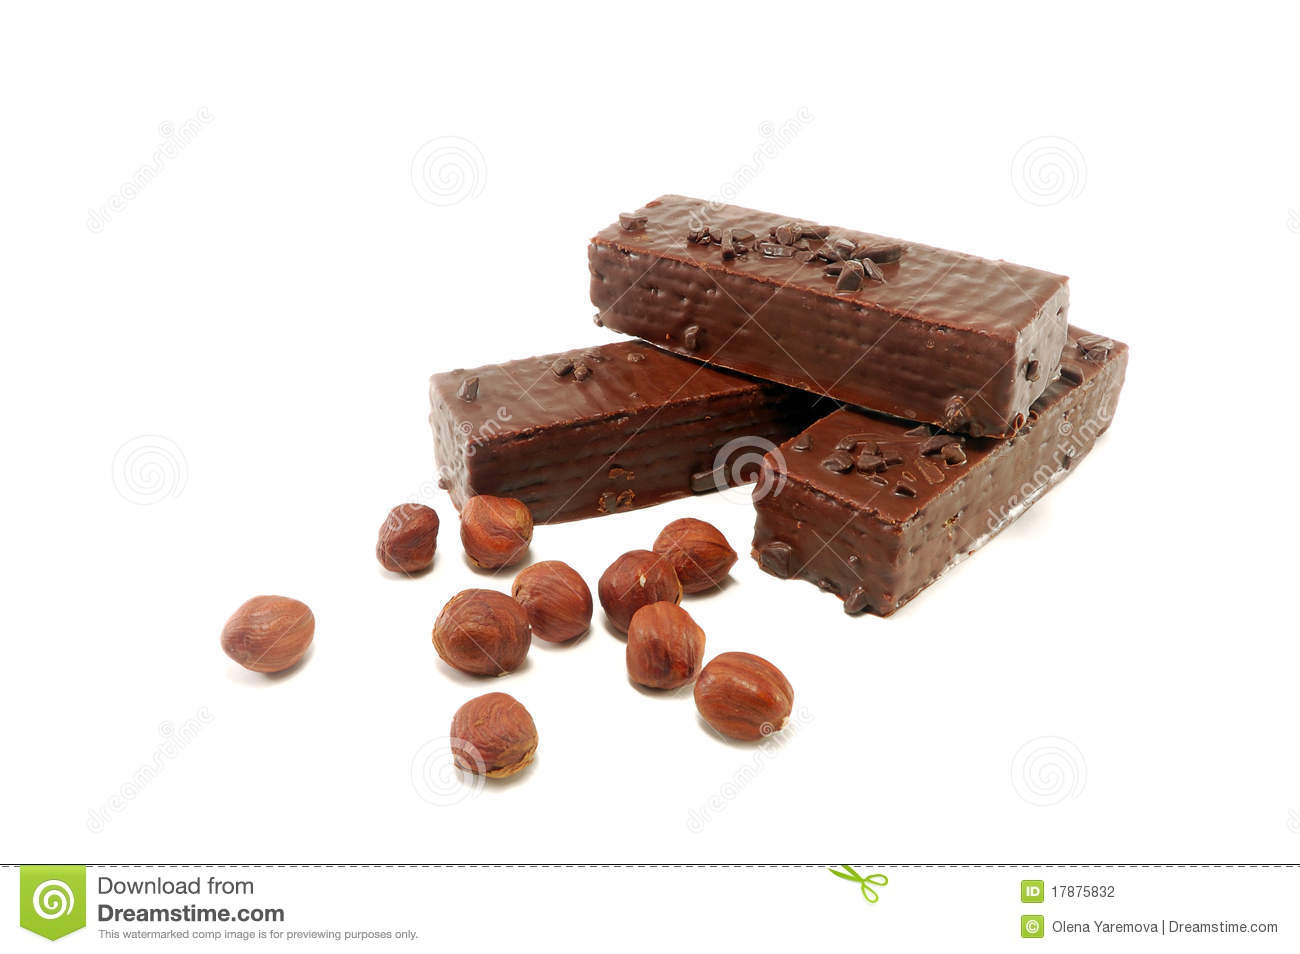 wafers-chocolate-nut-17875832.jpg